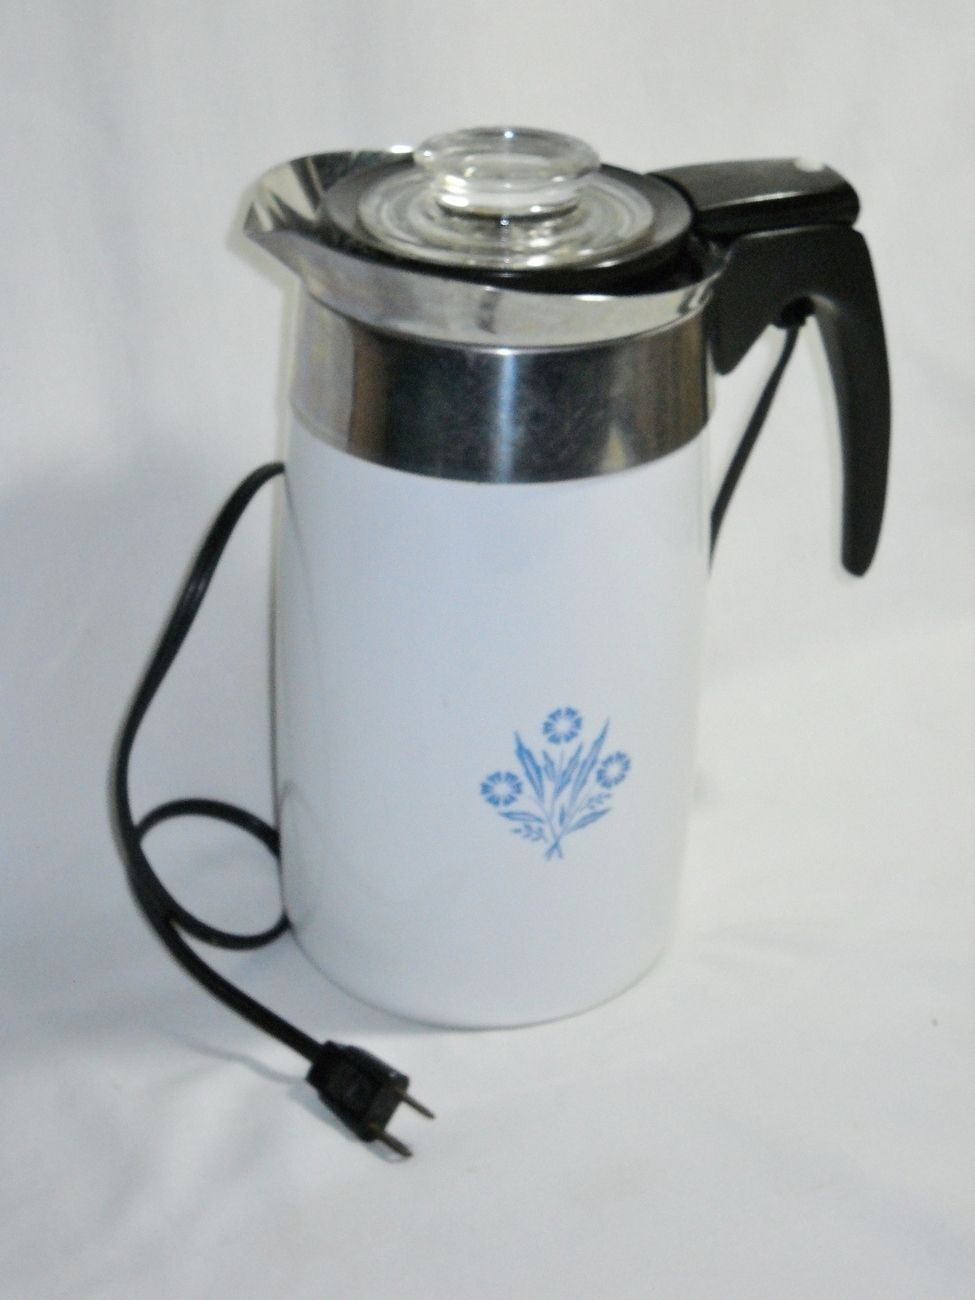 Corning Ware 10-Cup Electric Coffee Pot